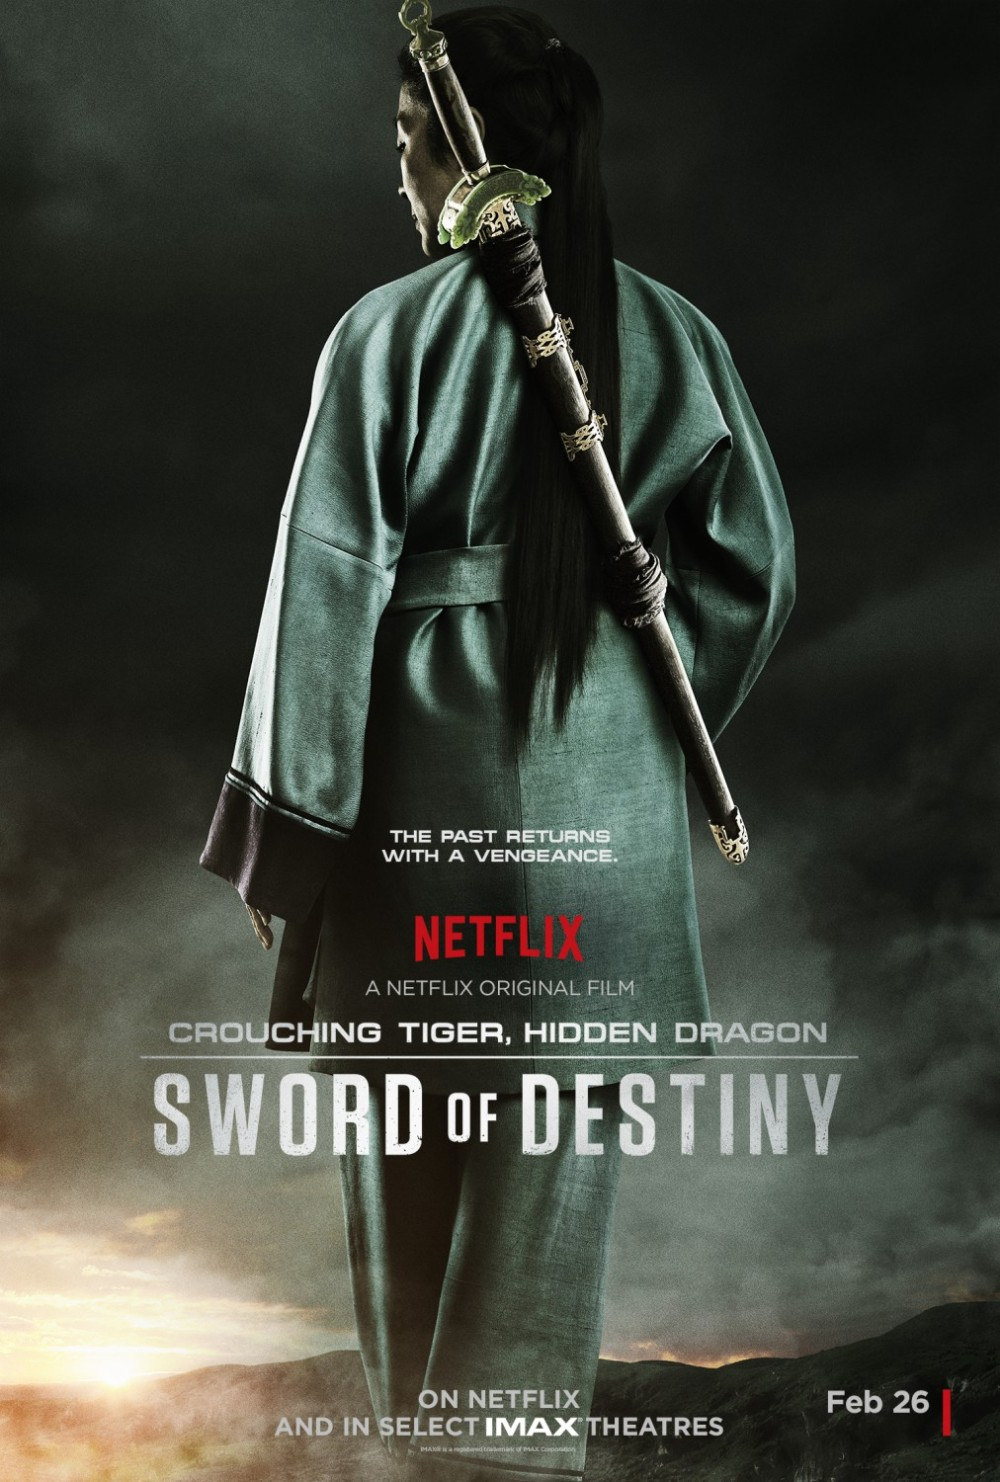 crouching-tiger-hidden-dragon-sword-of-destiny-poster